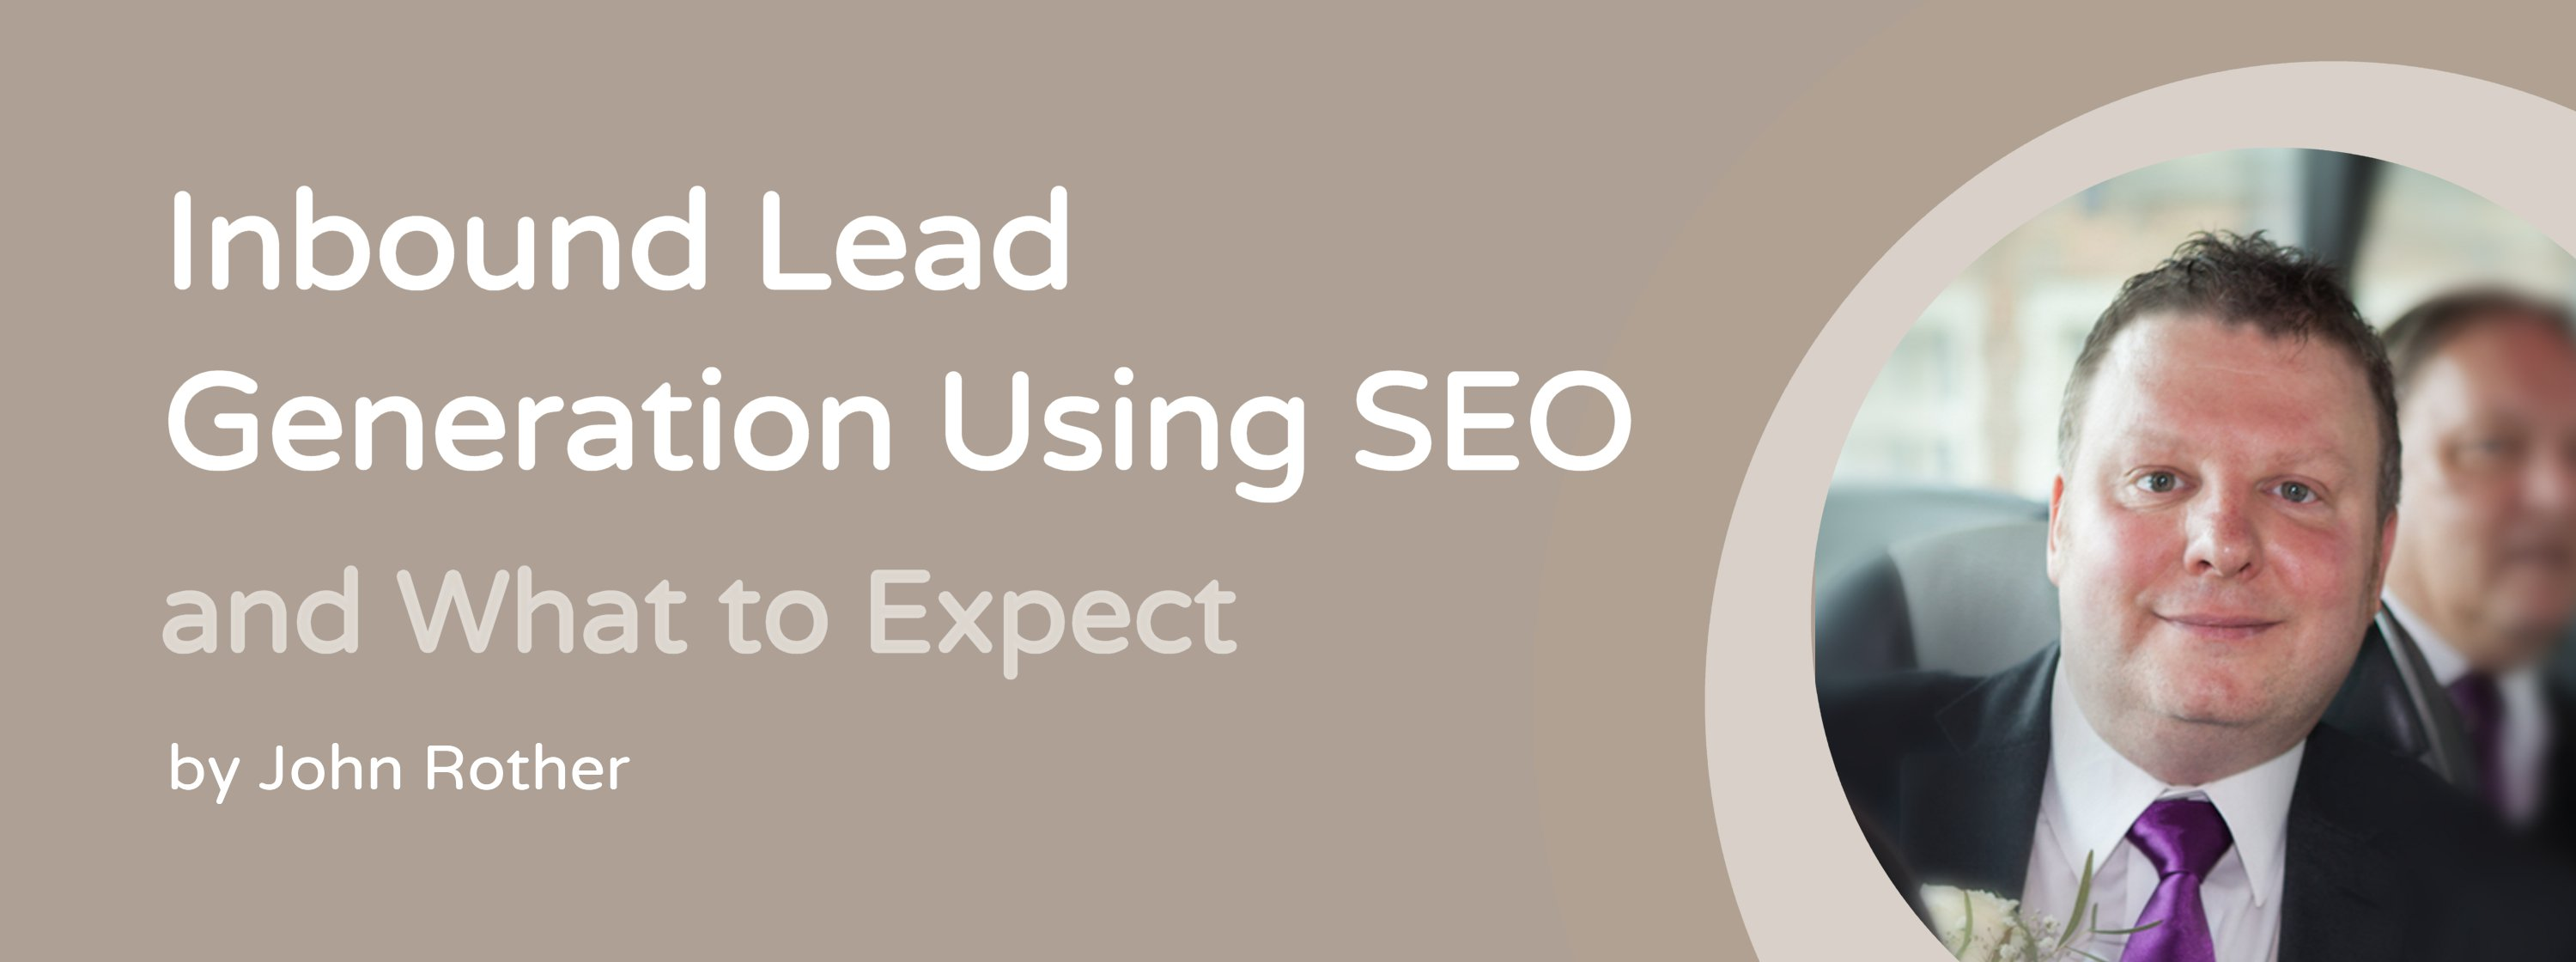 Inbound Lead Generation Using SEO